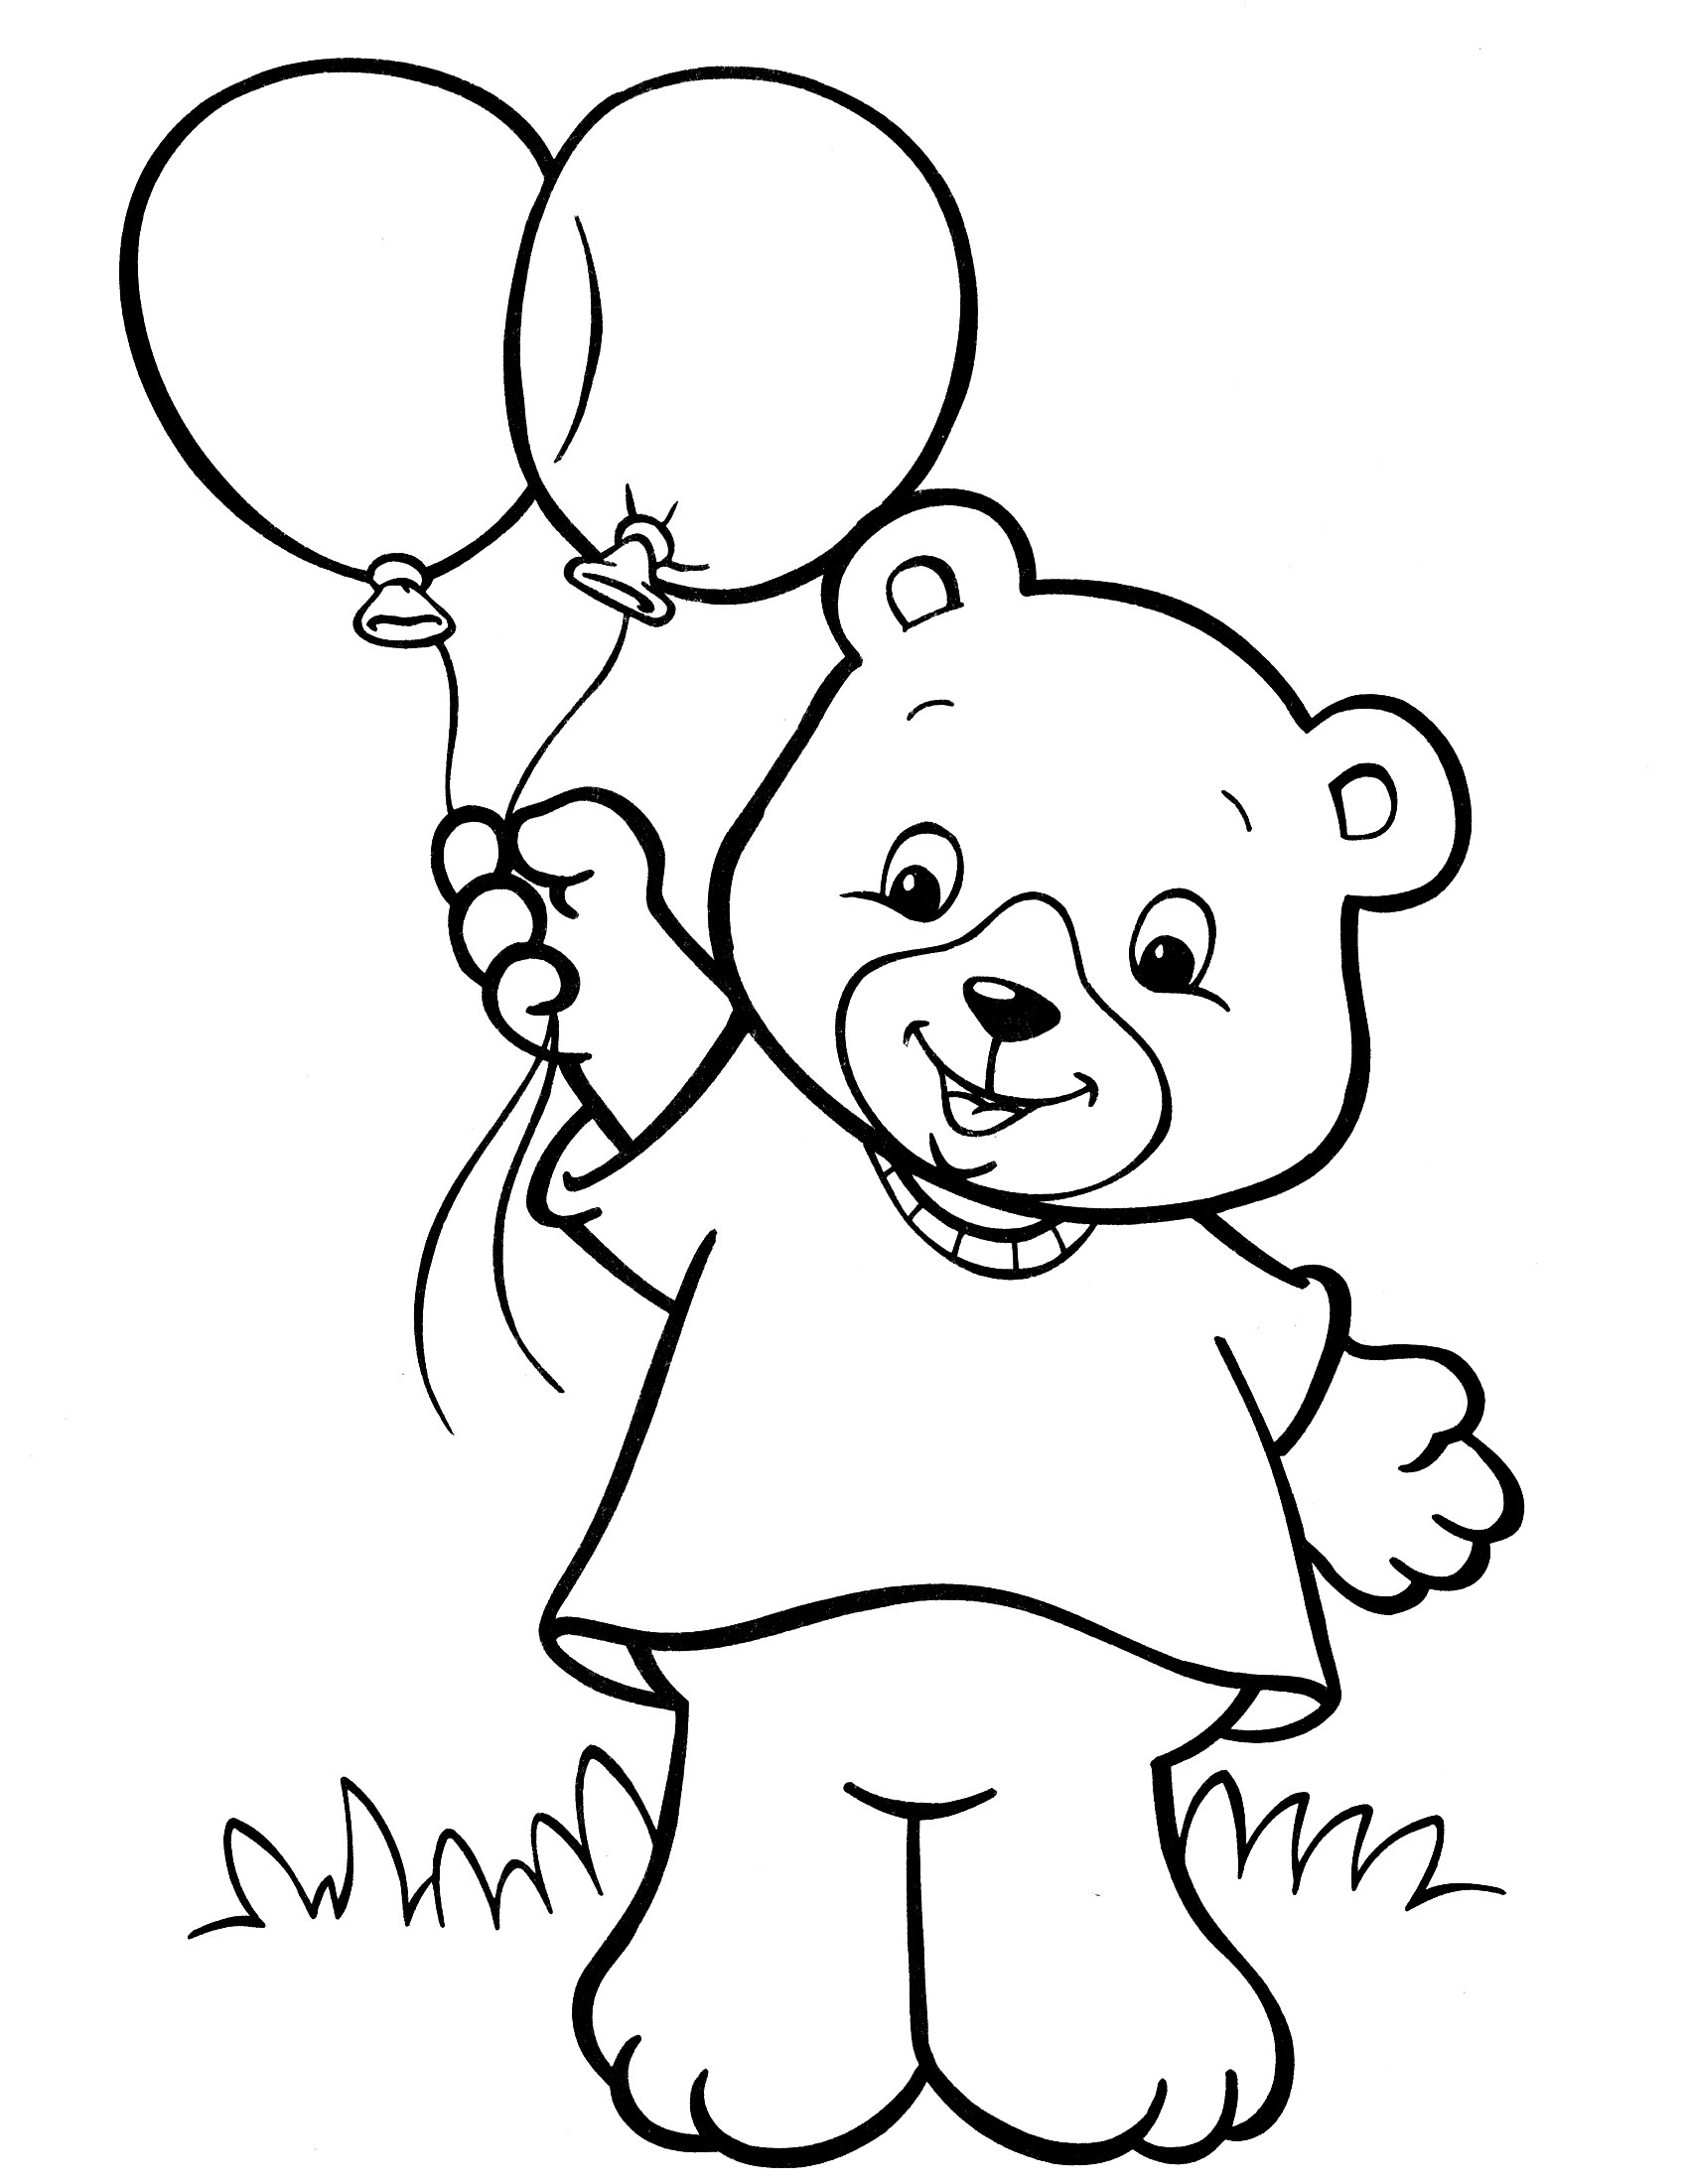 √ Coloring Activity For 2 Years Old   Worksheets For 2 Years Olds - Free Printable Coloring Pages For 2 Year Olds